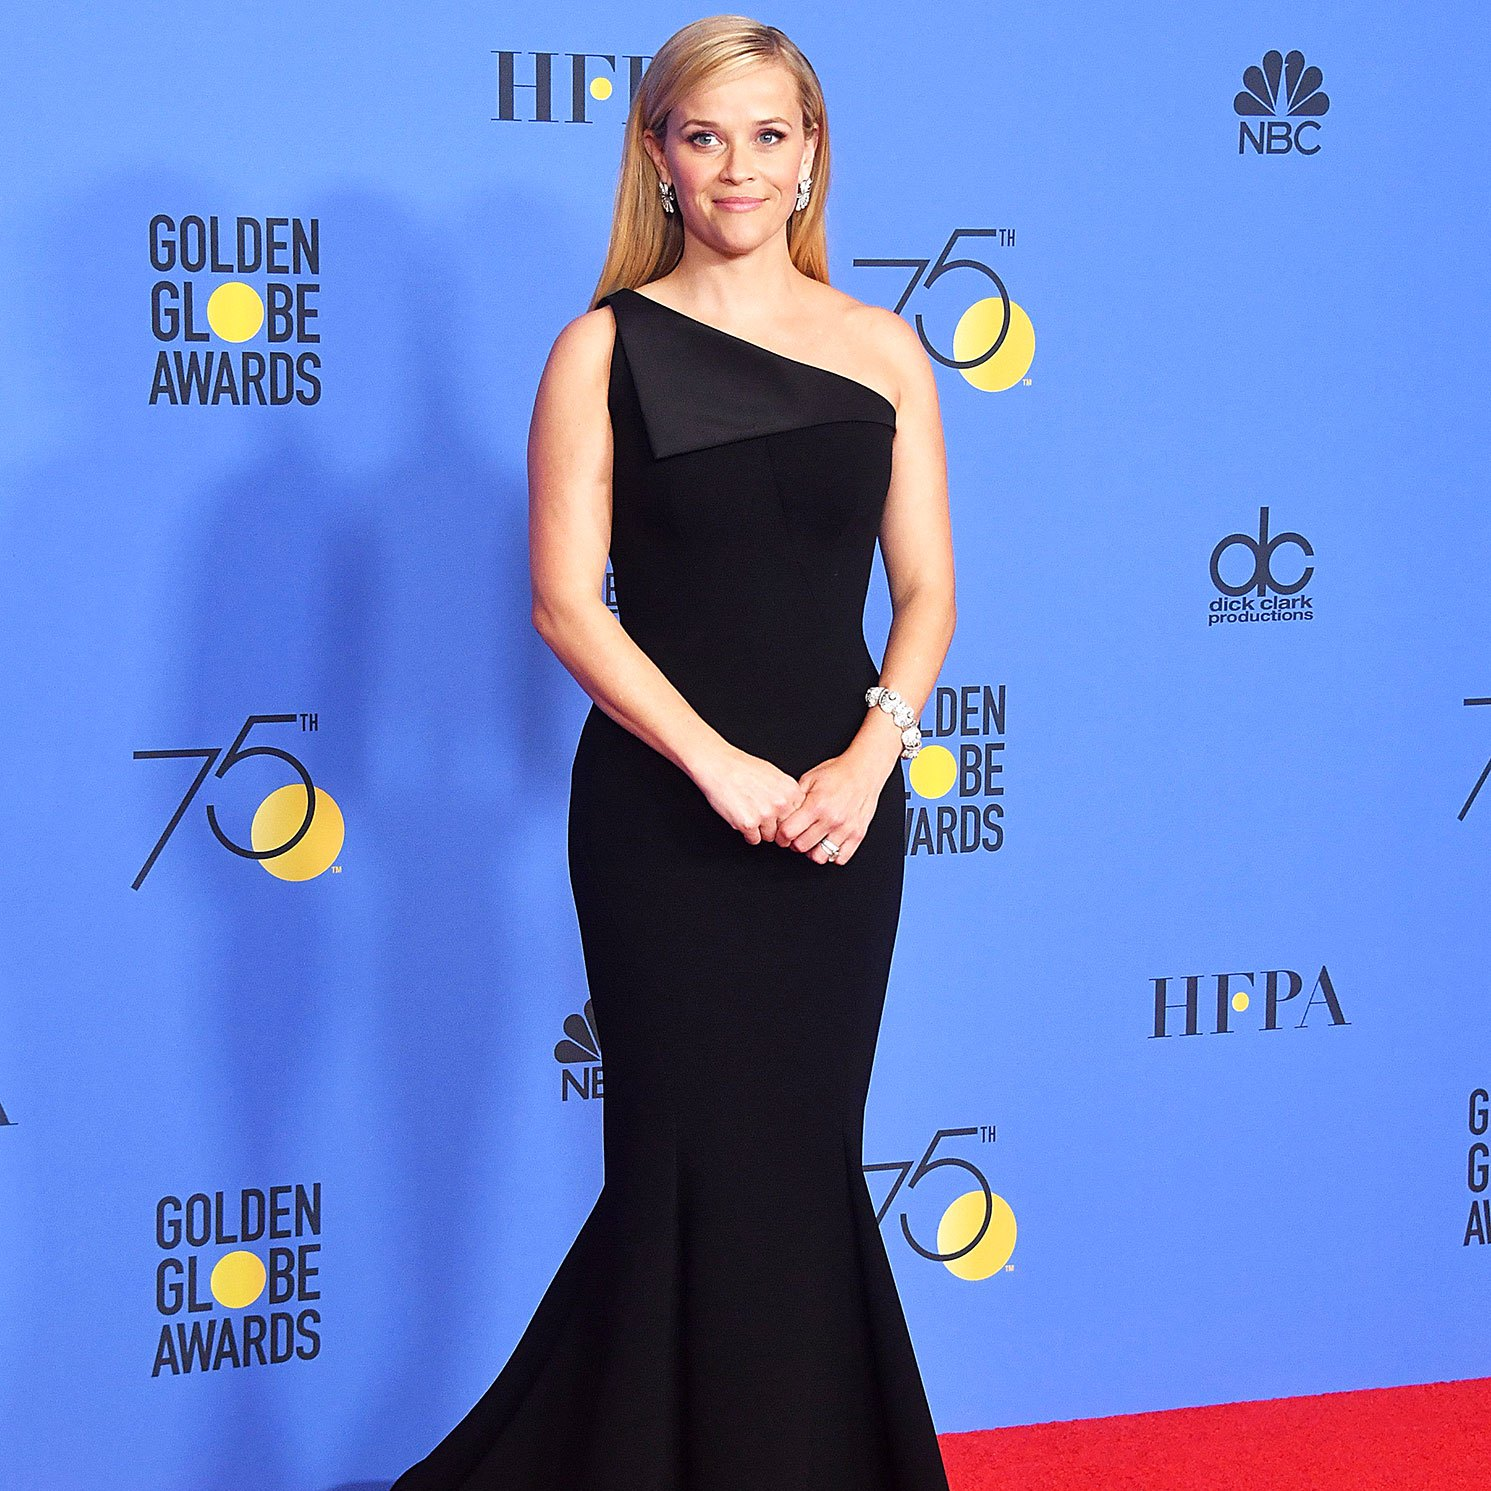 Birthday Girl Reese Witherspoon's Best Red Carpet Looks